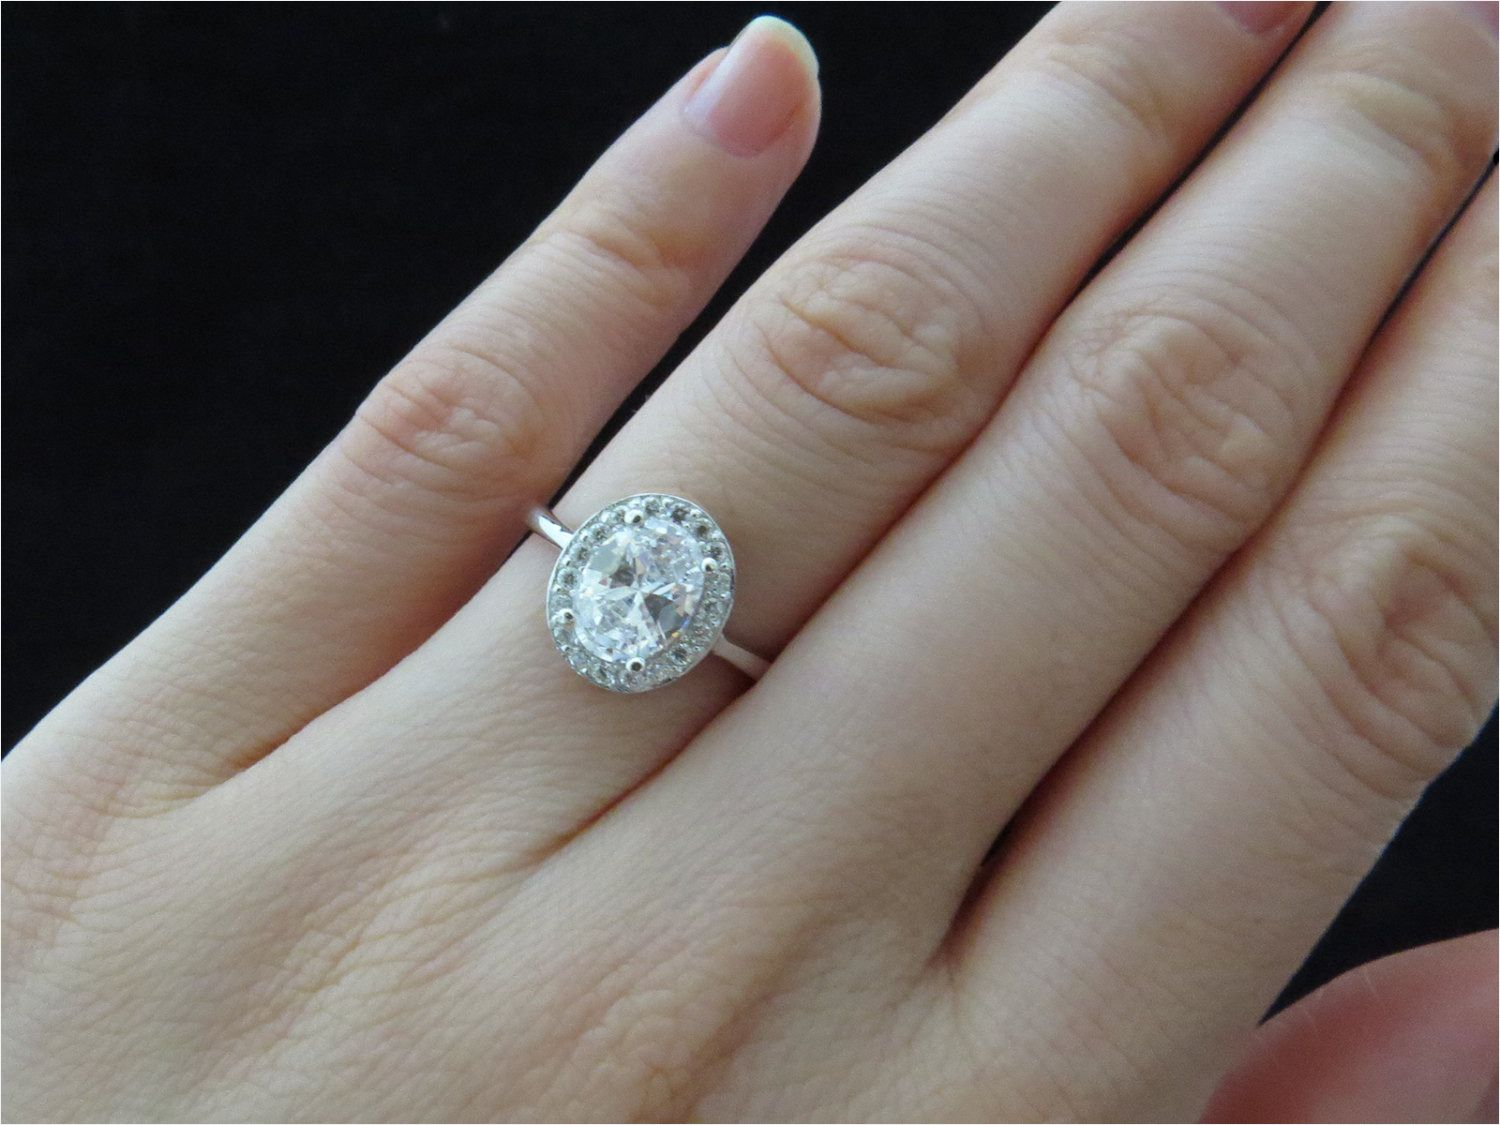 It S A Nice 1 4 Carat Diamond Pieces In A Beautiul Setting Petite And Small For Small Hands Its Size 5 Kay Jewelers Rings Diamond Ring Diamond